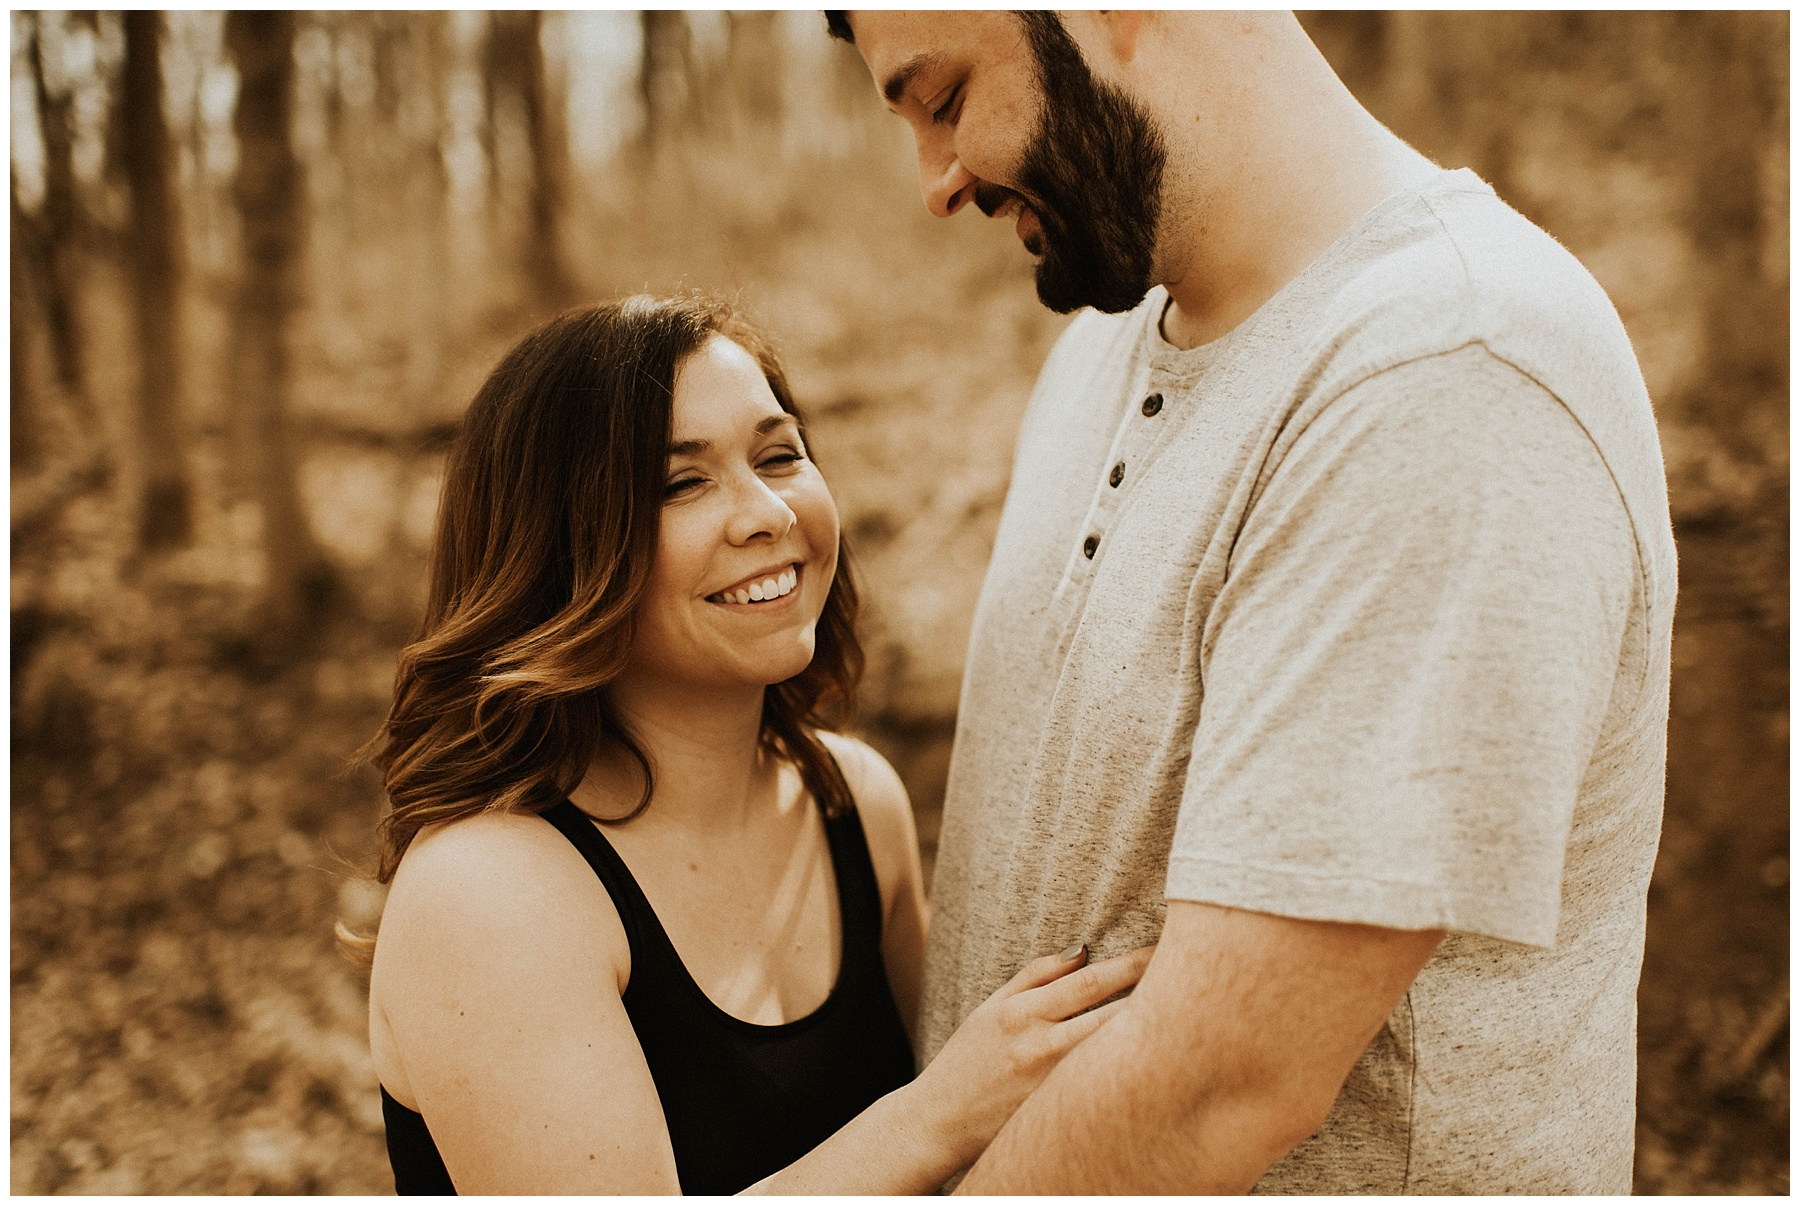 Charlie + Tiffany Engagements in the woods Lauren F